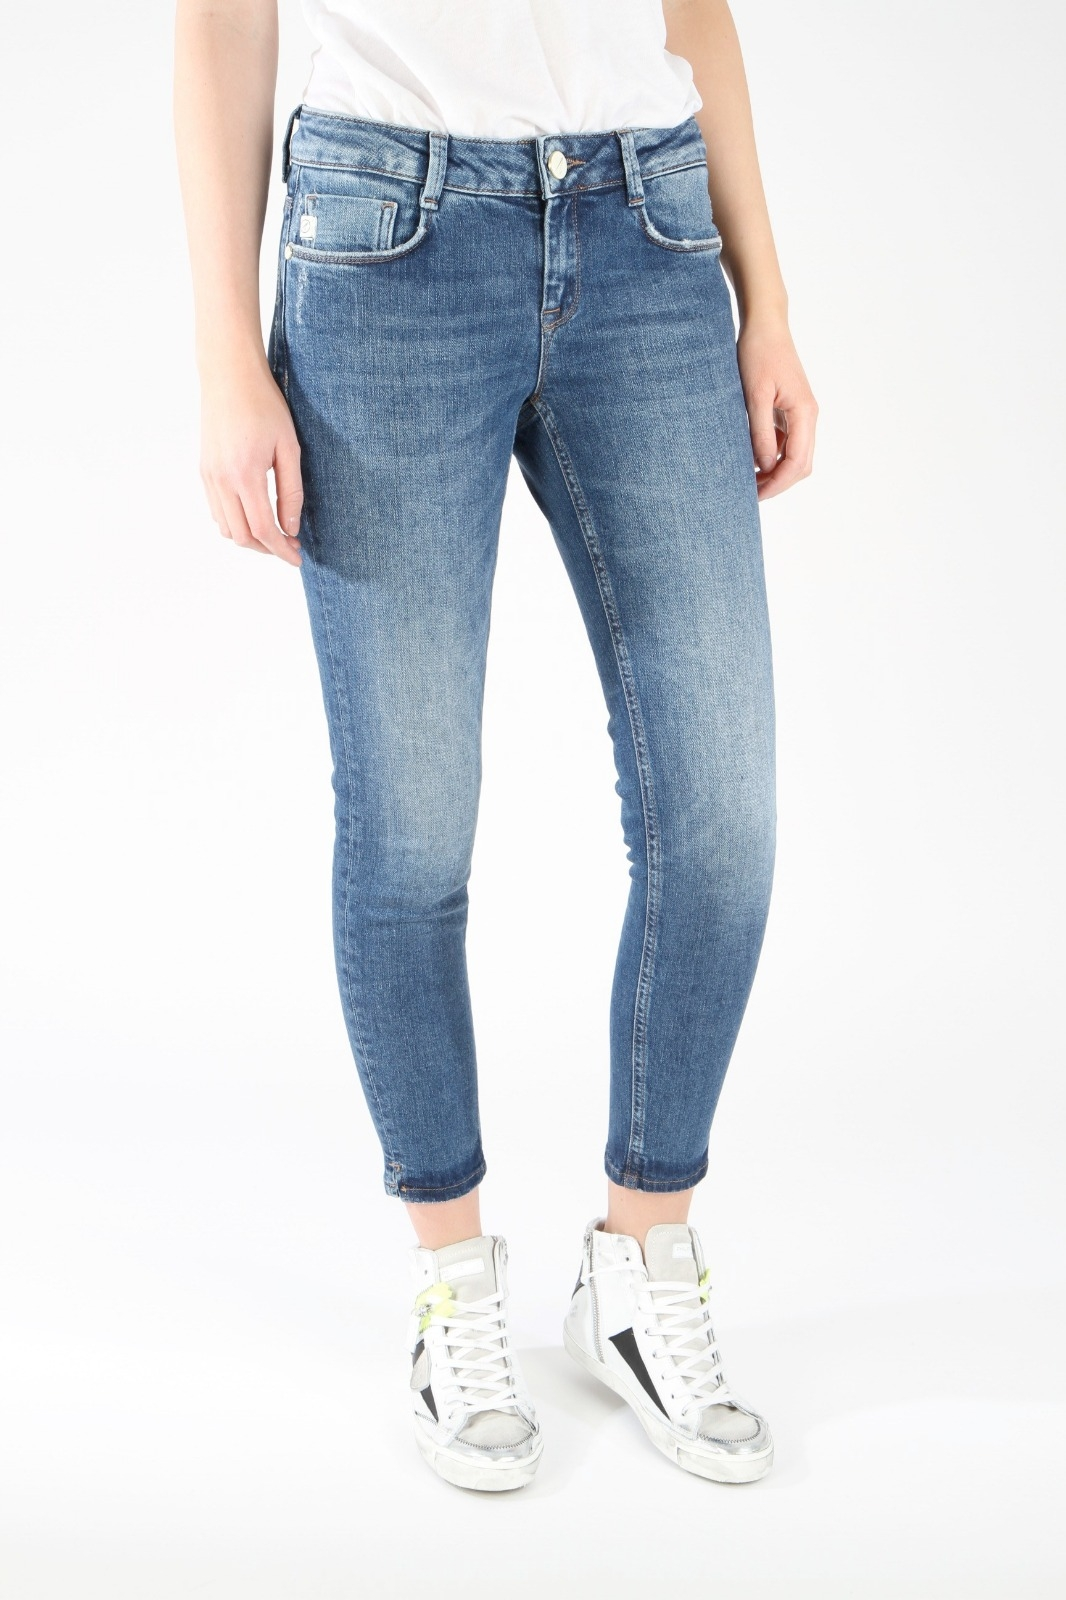 Jeans 'Jungbusch' Cropped - midblue